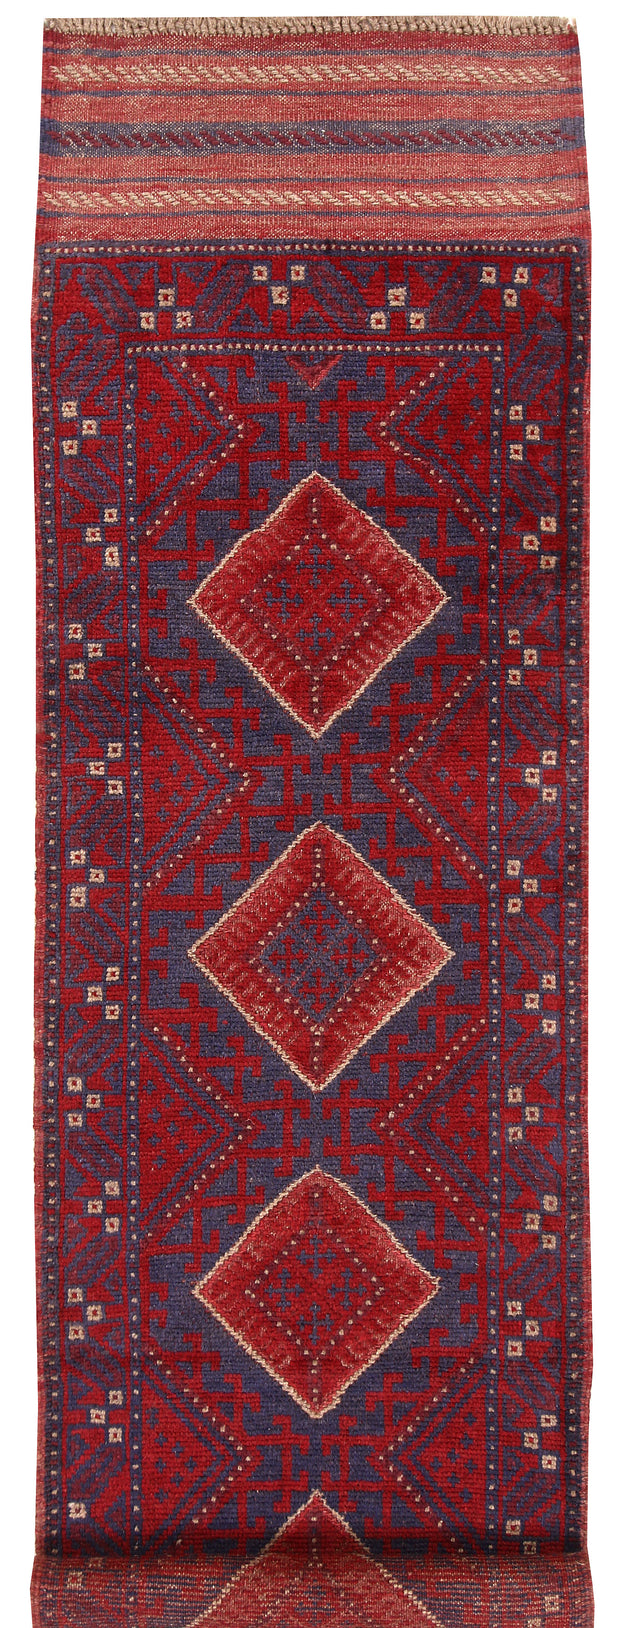 Dark Red Mashwani 2' 2 x 8' - No. 63709 - ALRUG Rug Store